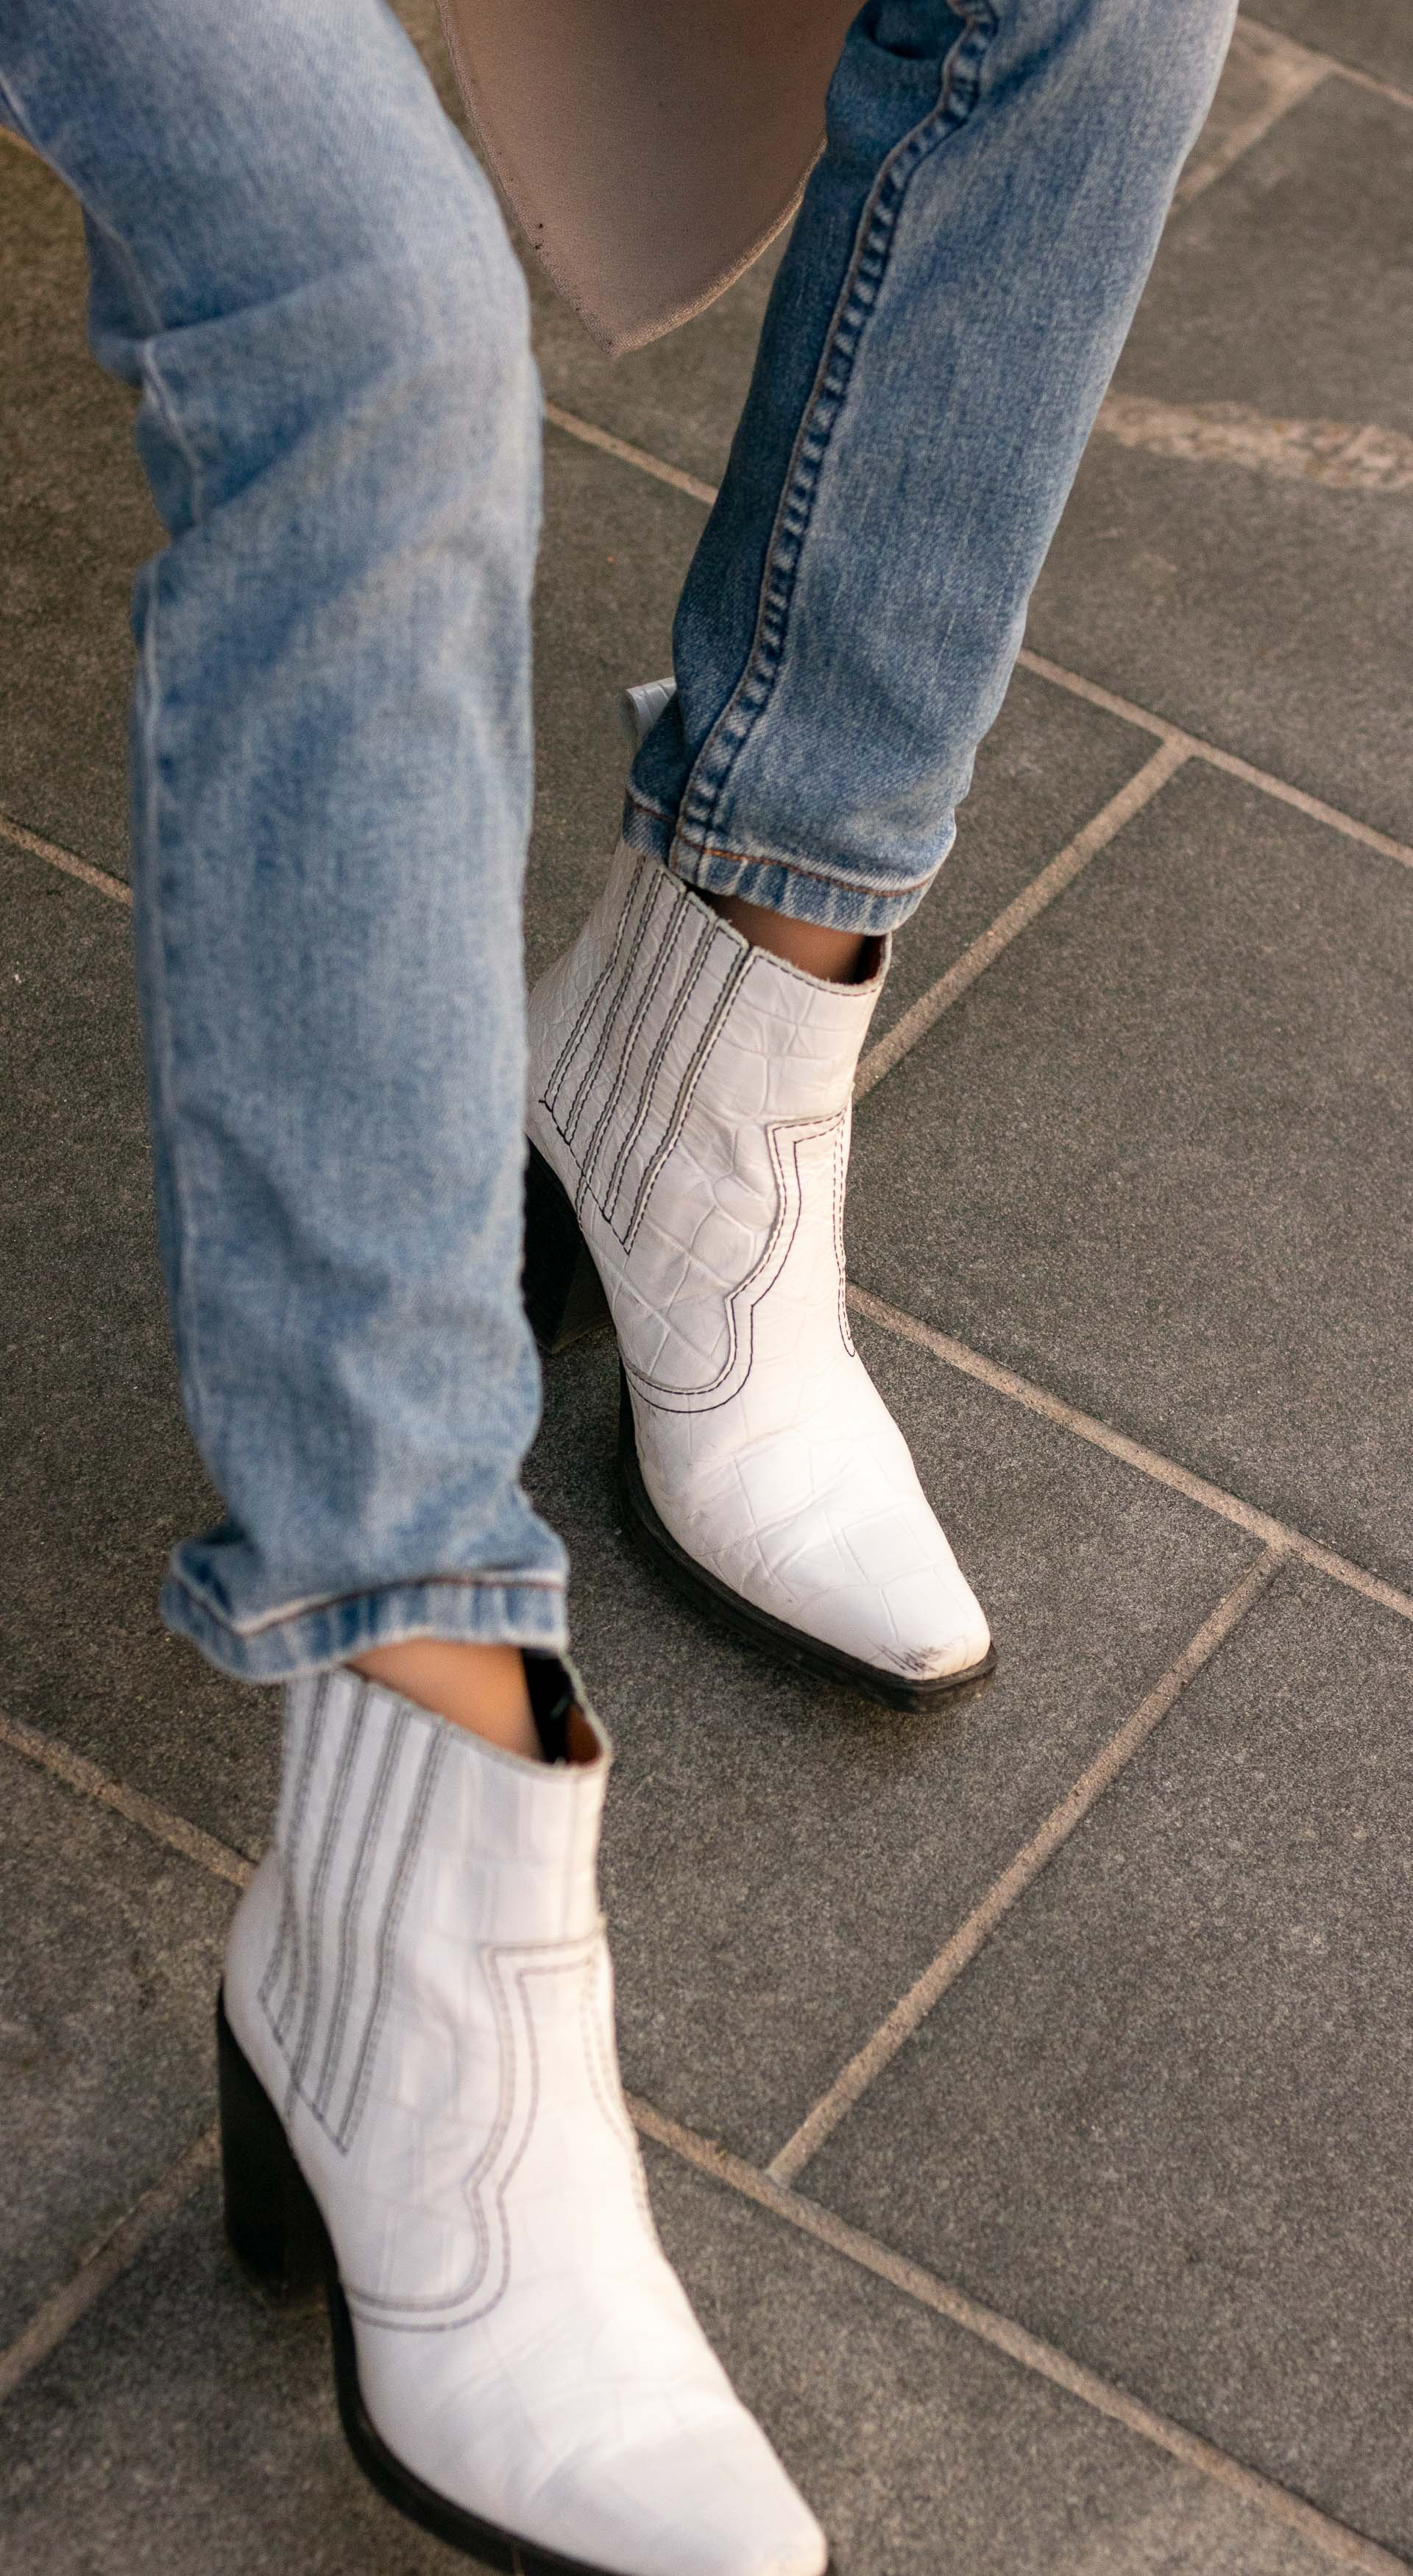 Brunette from Wall Street white western ganni boots a.p.c. washed denim jeans